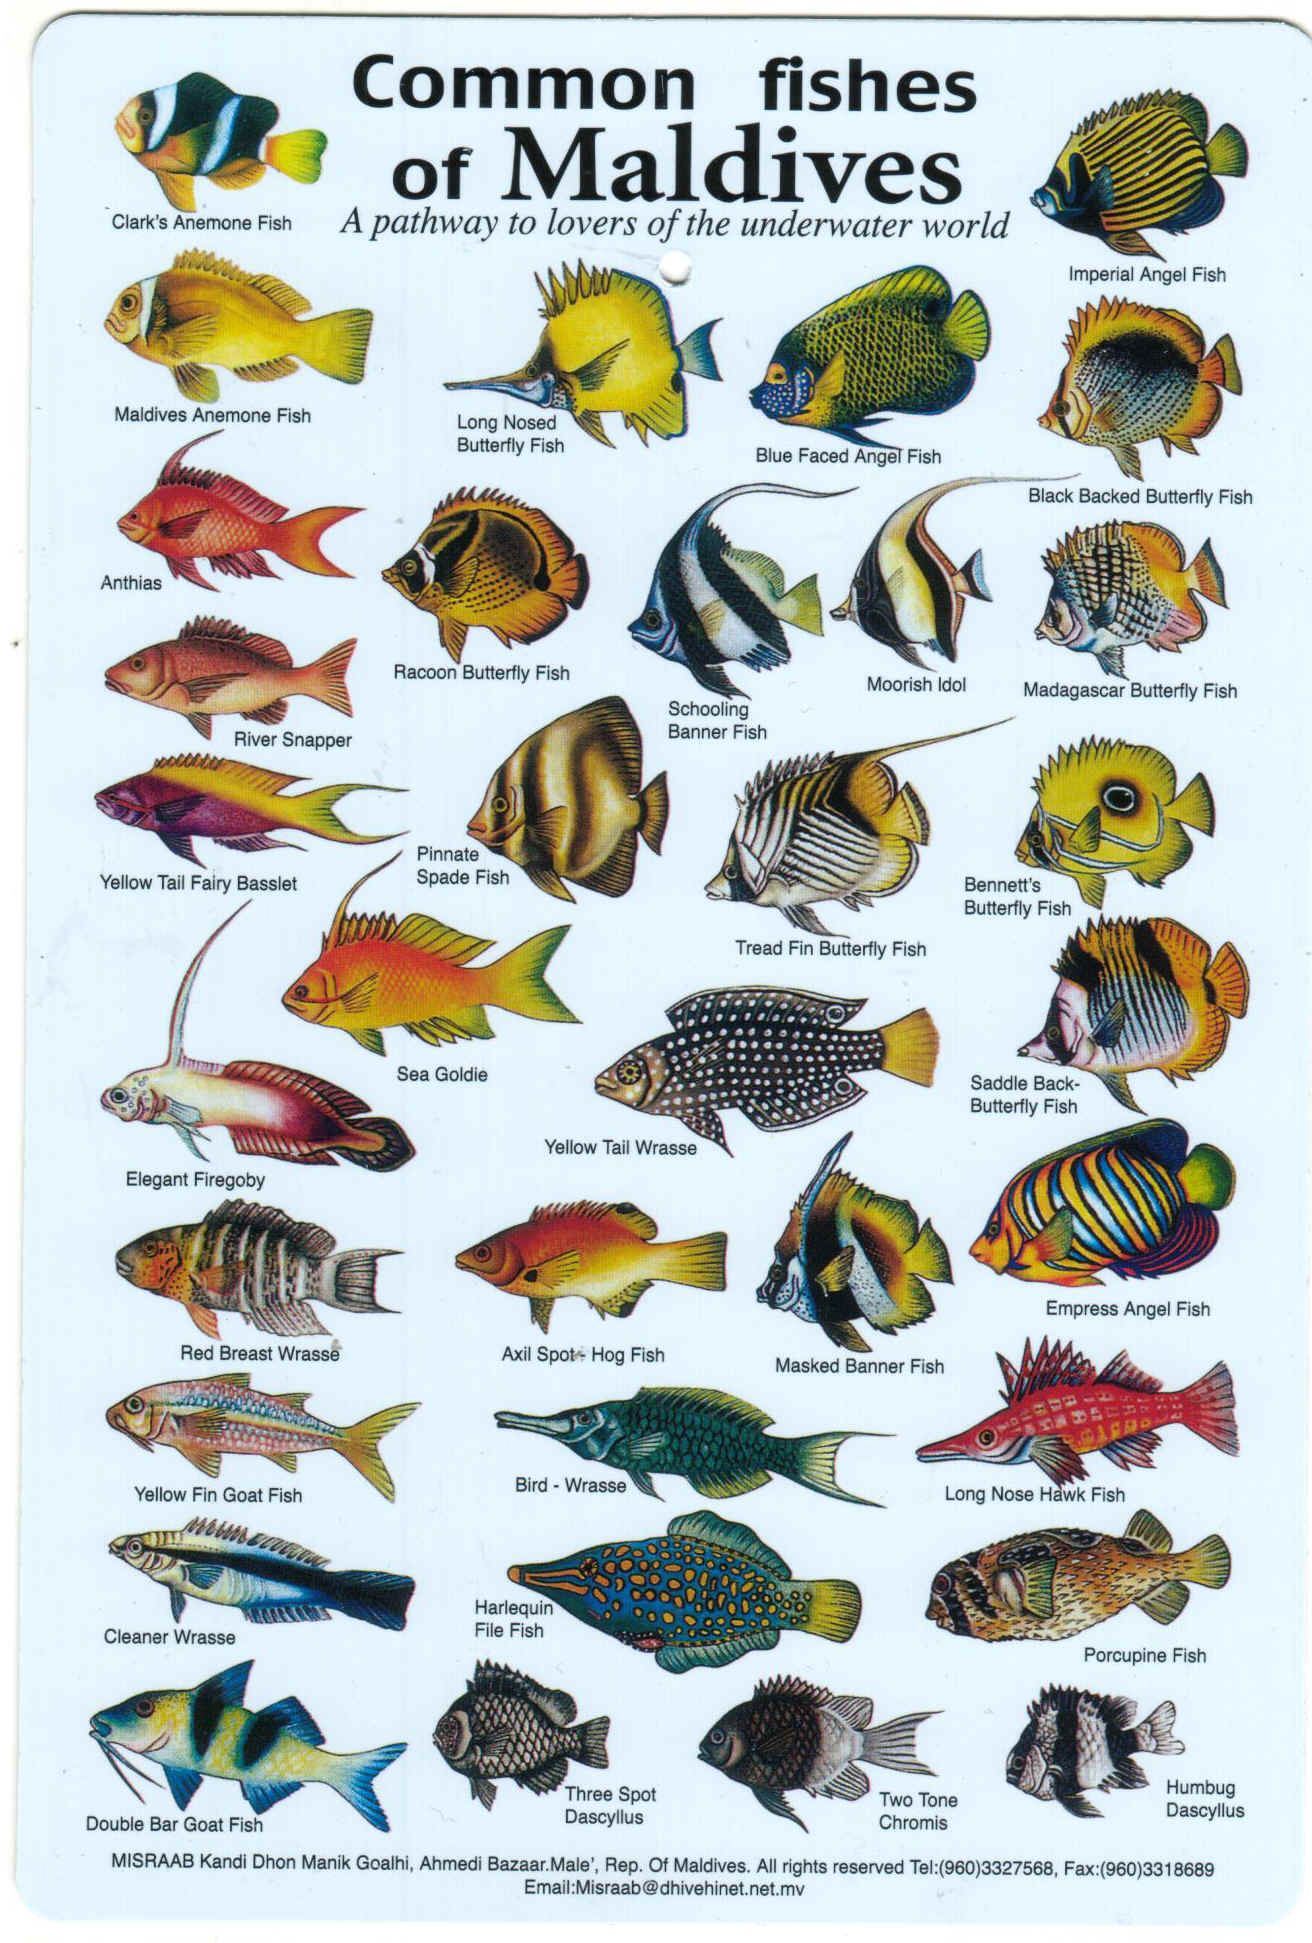 Fishes of the maldives identification chart water for Florida saltwater fish identification